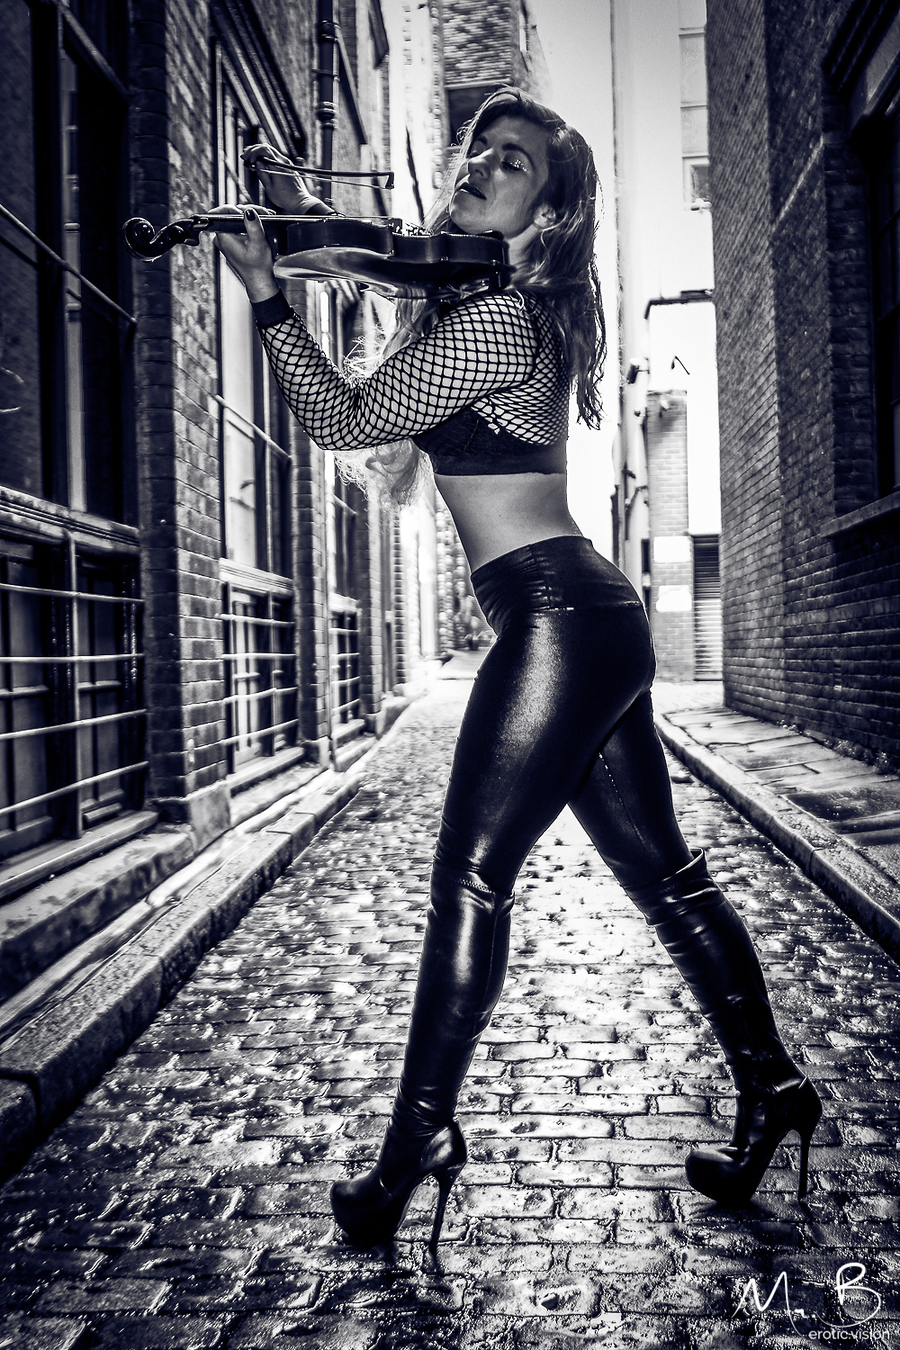 Street Player / Photography by Mr.B, Model Helen-Rose / Uploaded 11th August 2019 @ 09:11 PM